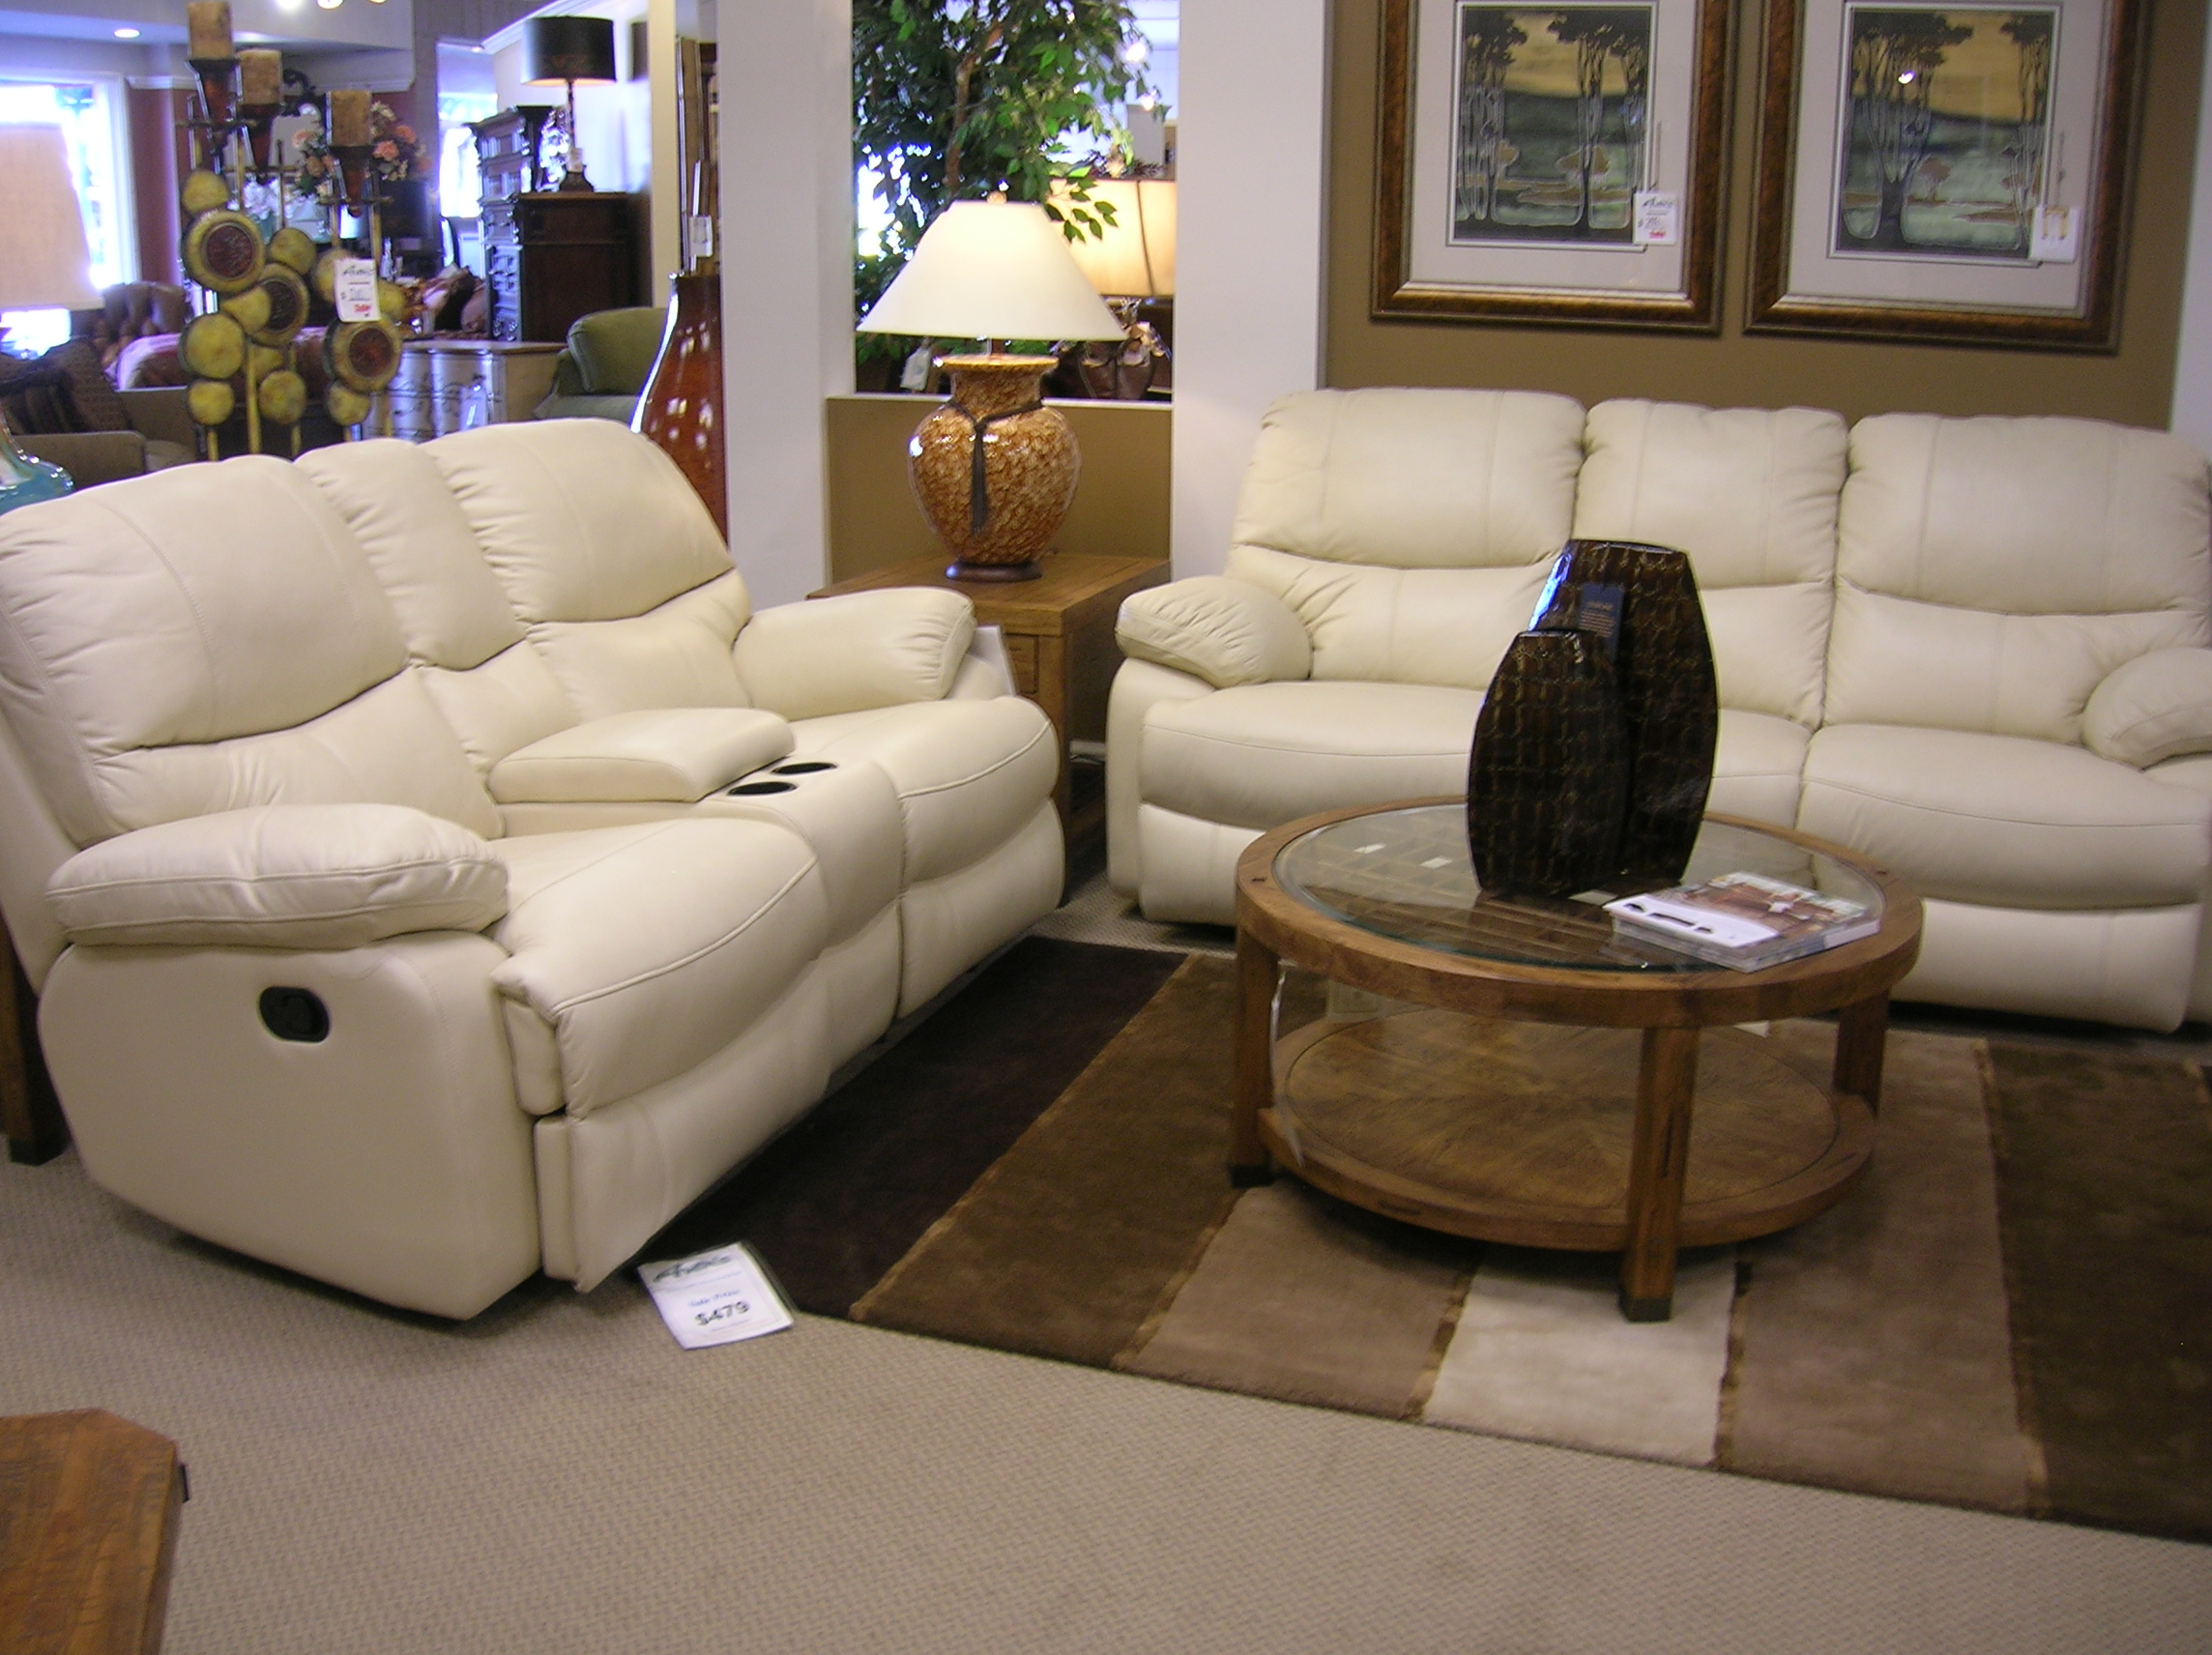 Palmdale furniture Lancaster Blvd